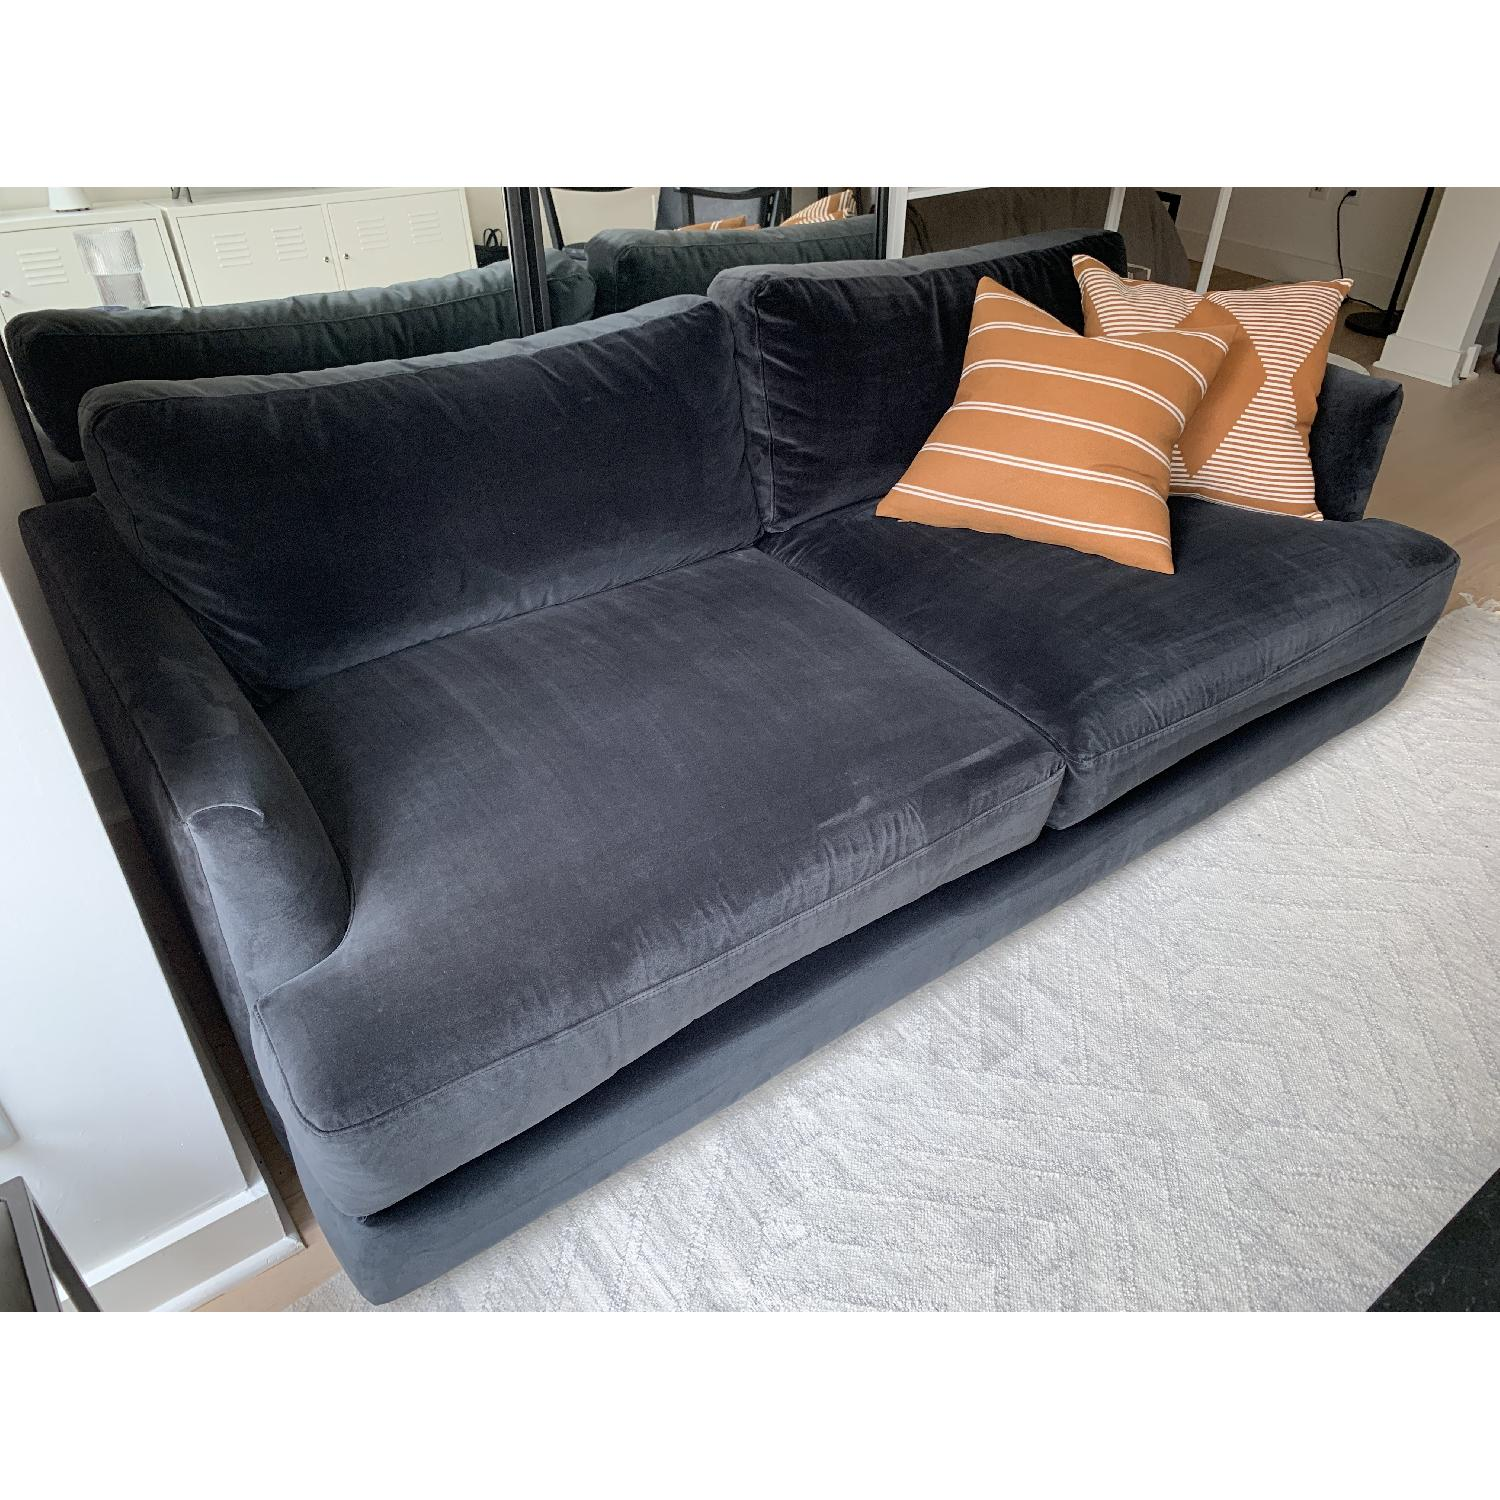 West Elm Haven Sofa in Iron Astor Velvet - image-3